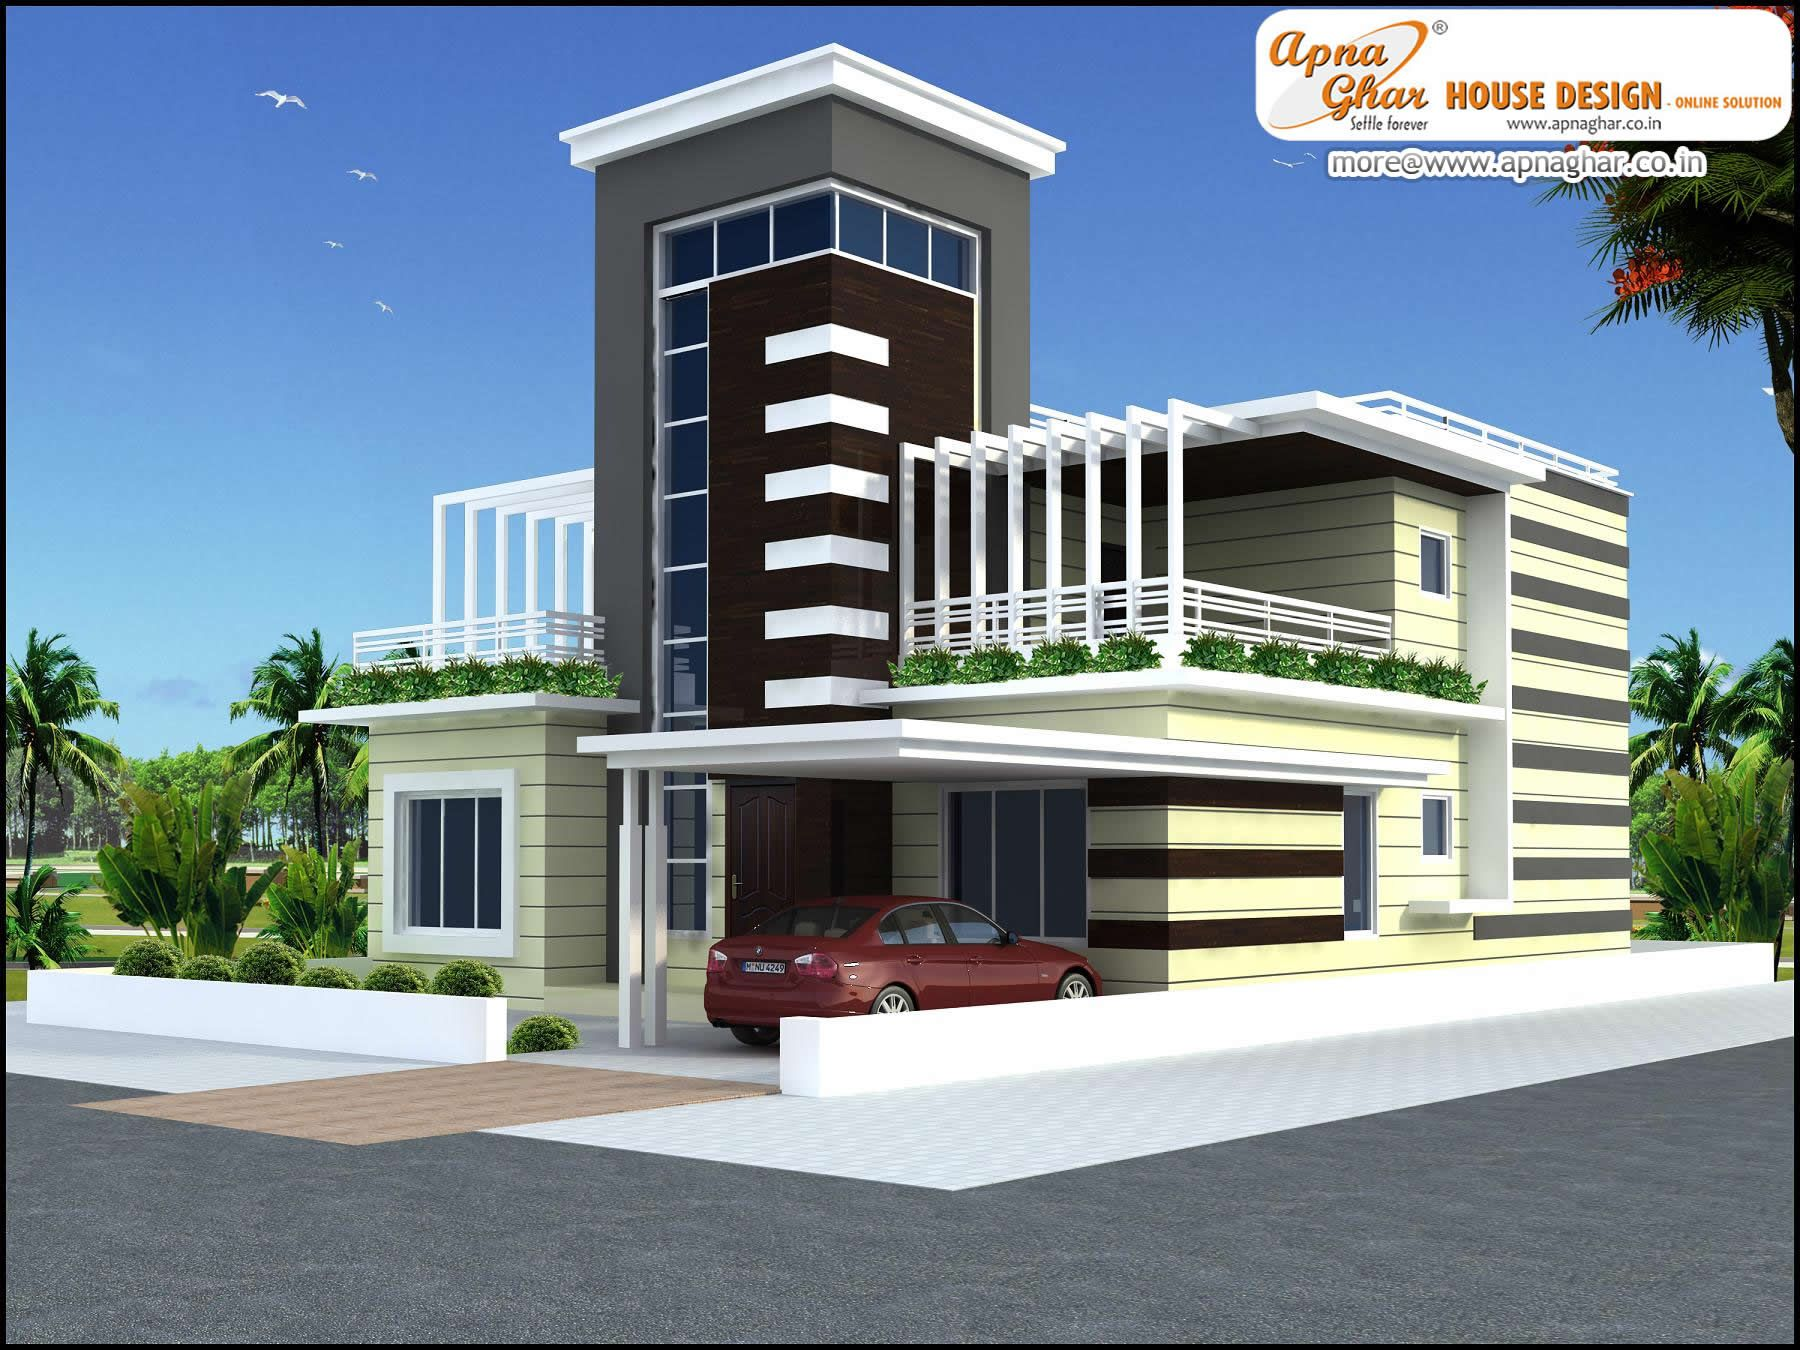 4 Bedroom Duplex 2 Floor House Design Area 252m2 21m